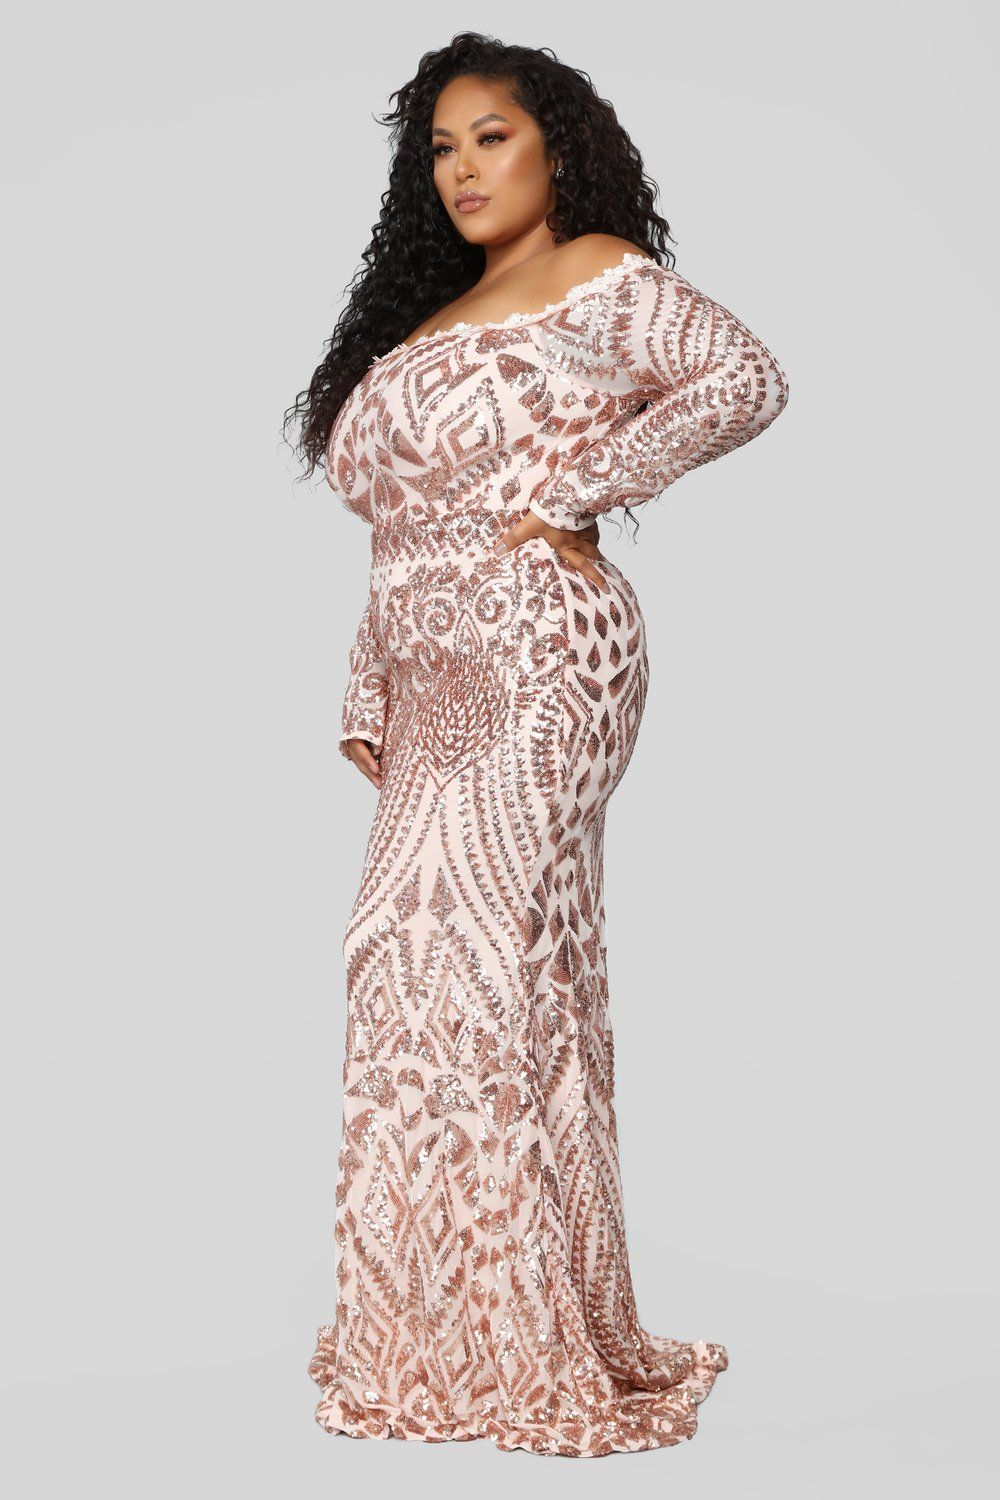 Chloe RoseGold Sequin Dress - RoseGold in 2019 | Sequin ...